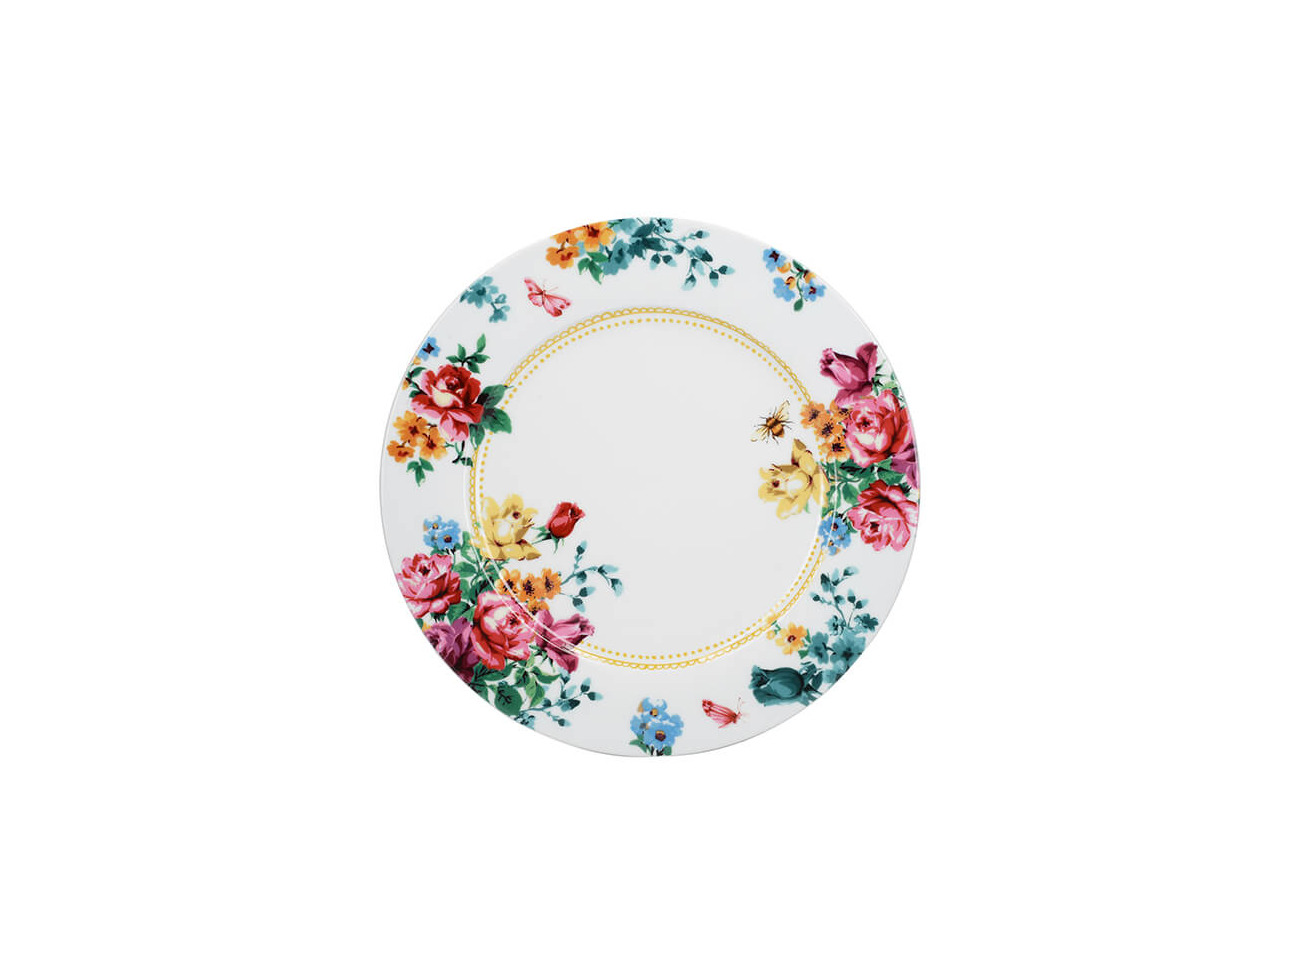 Katie Alice Bohemian Spirit Dinner Plate Dishwasher and Microwave Proof